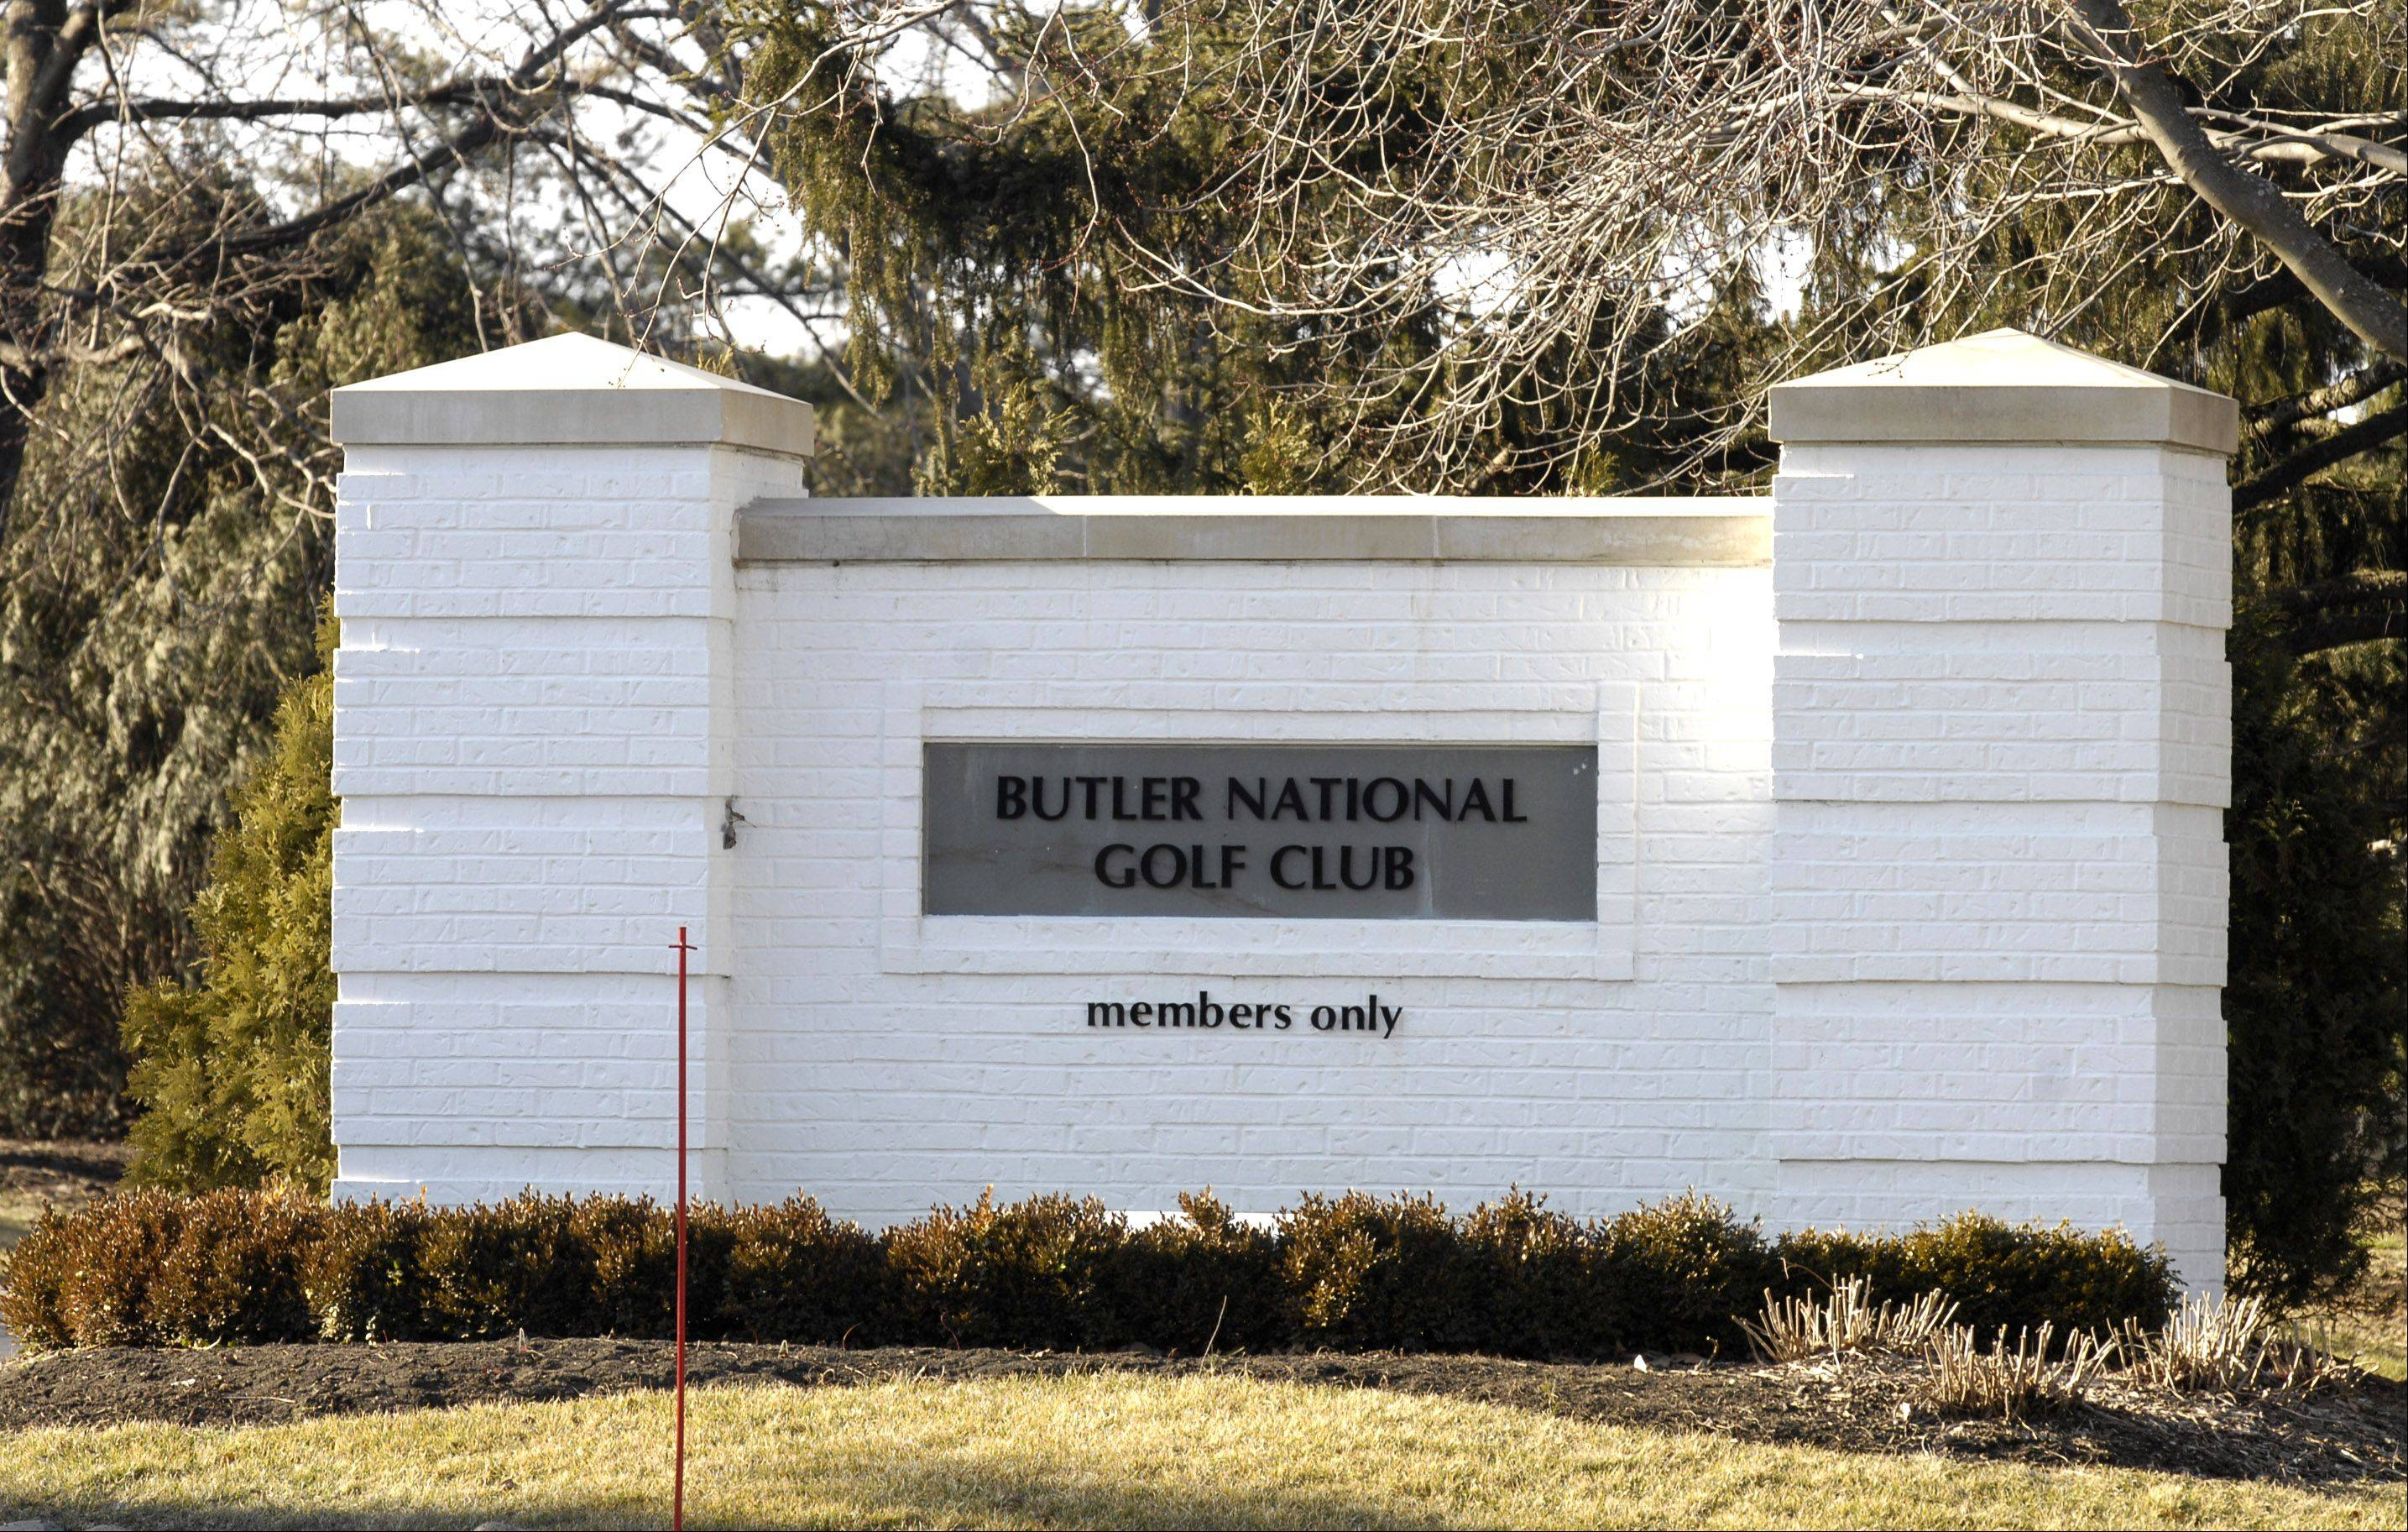 The Butler National Golf Club in Oak Brook is a men's-only club.